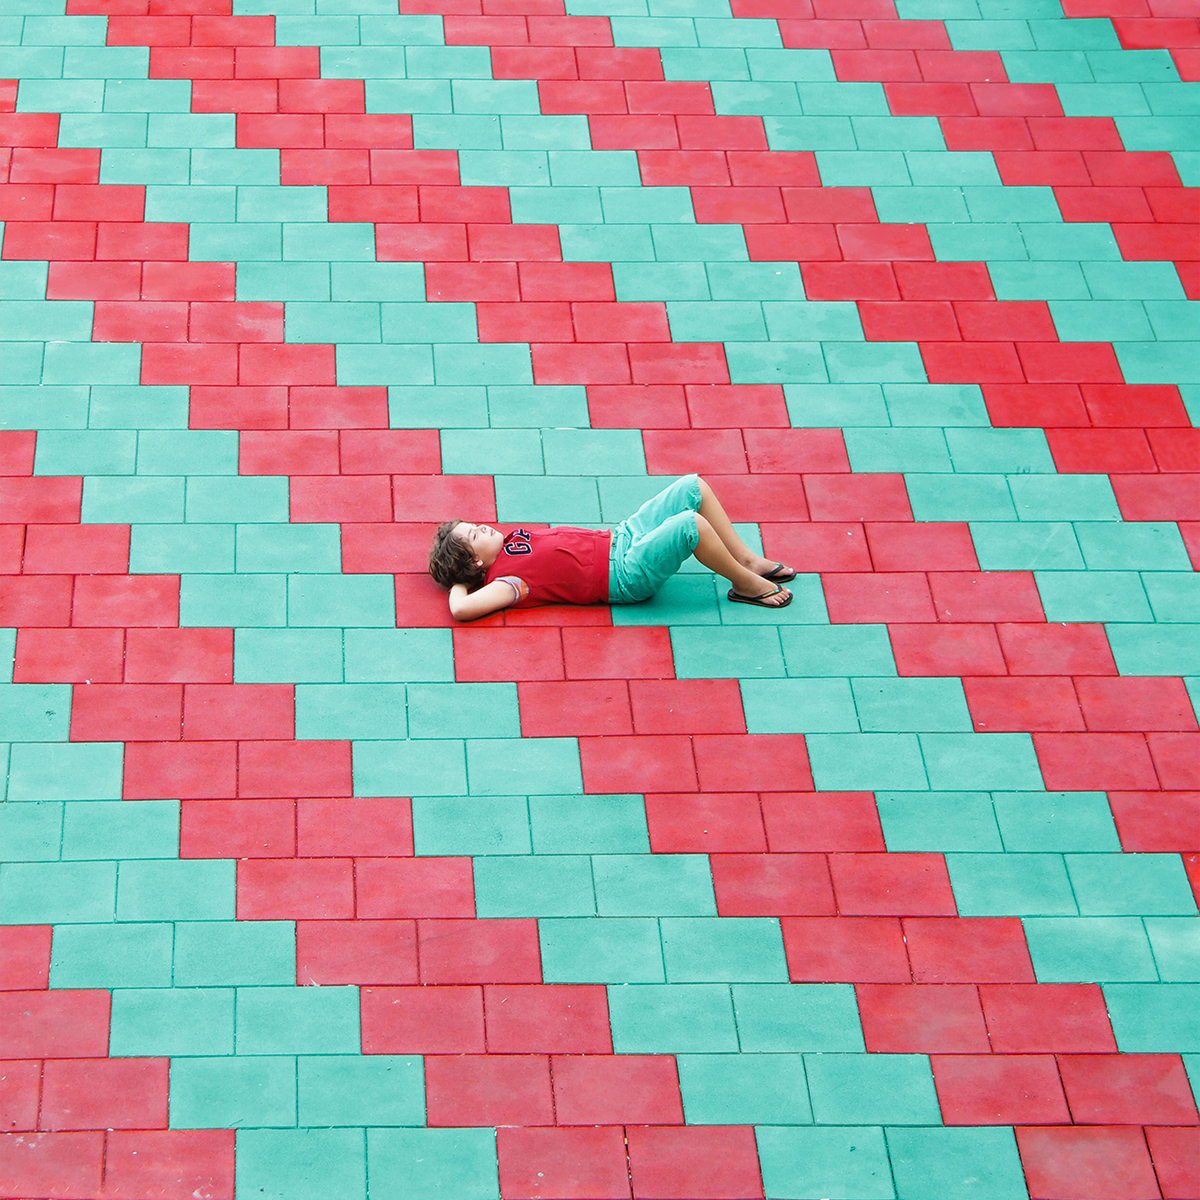 Picture Me Gone by Yener Torun - Life-Styled.net